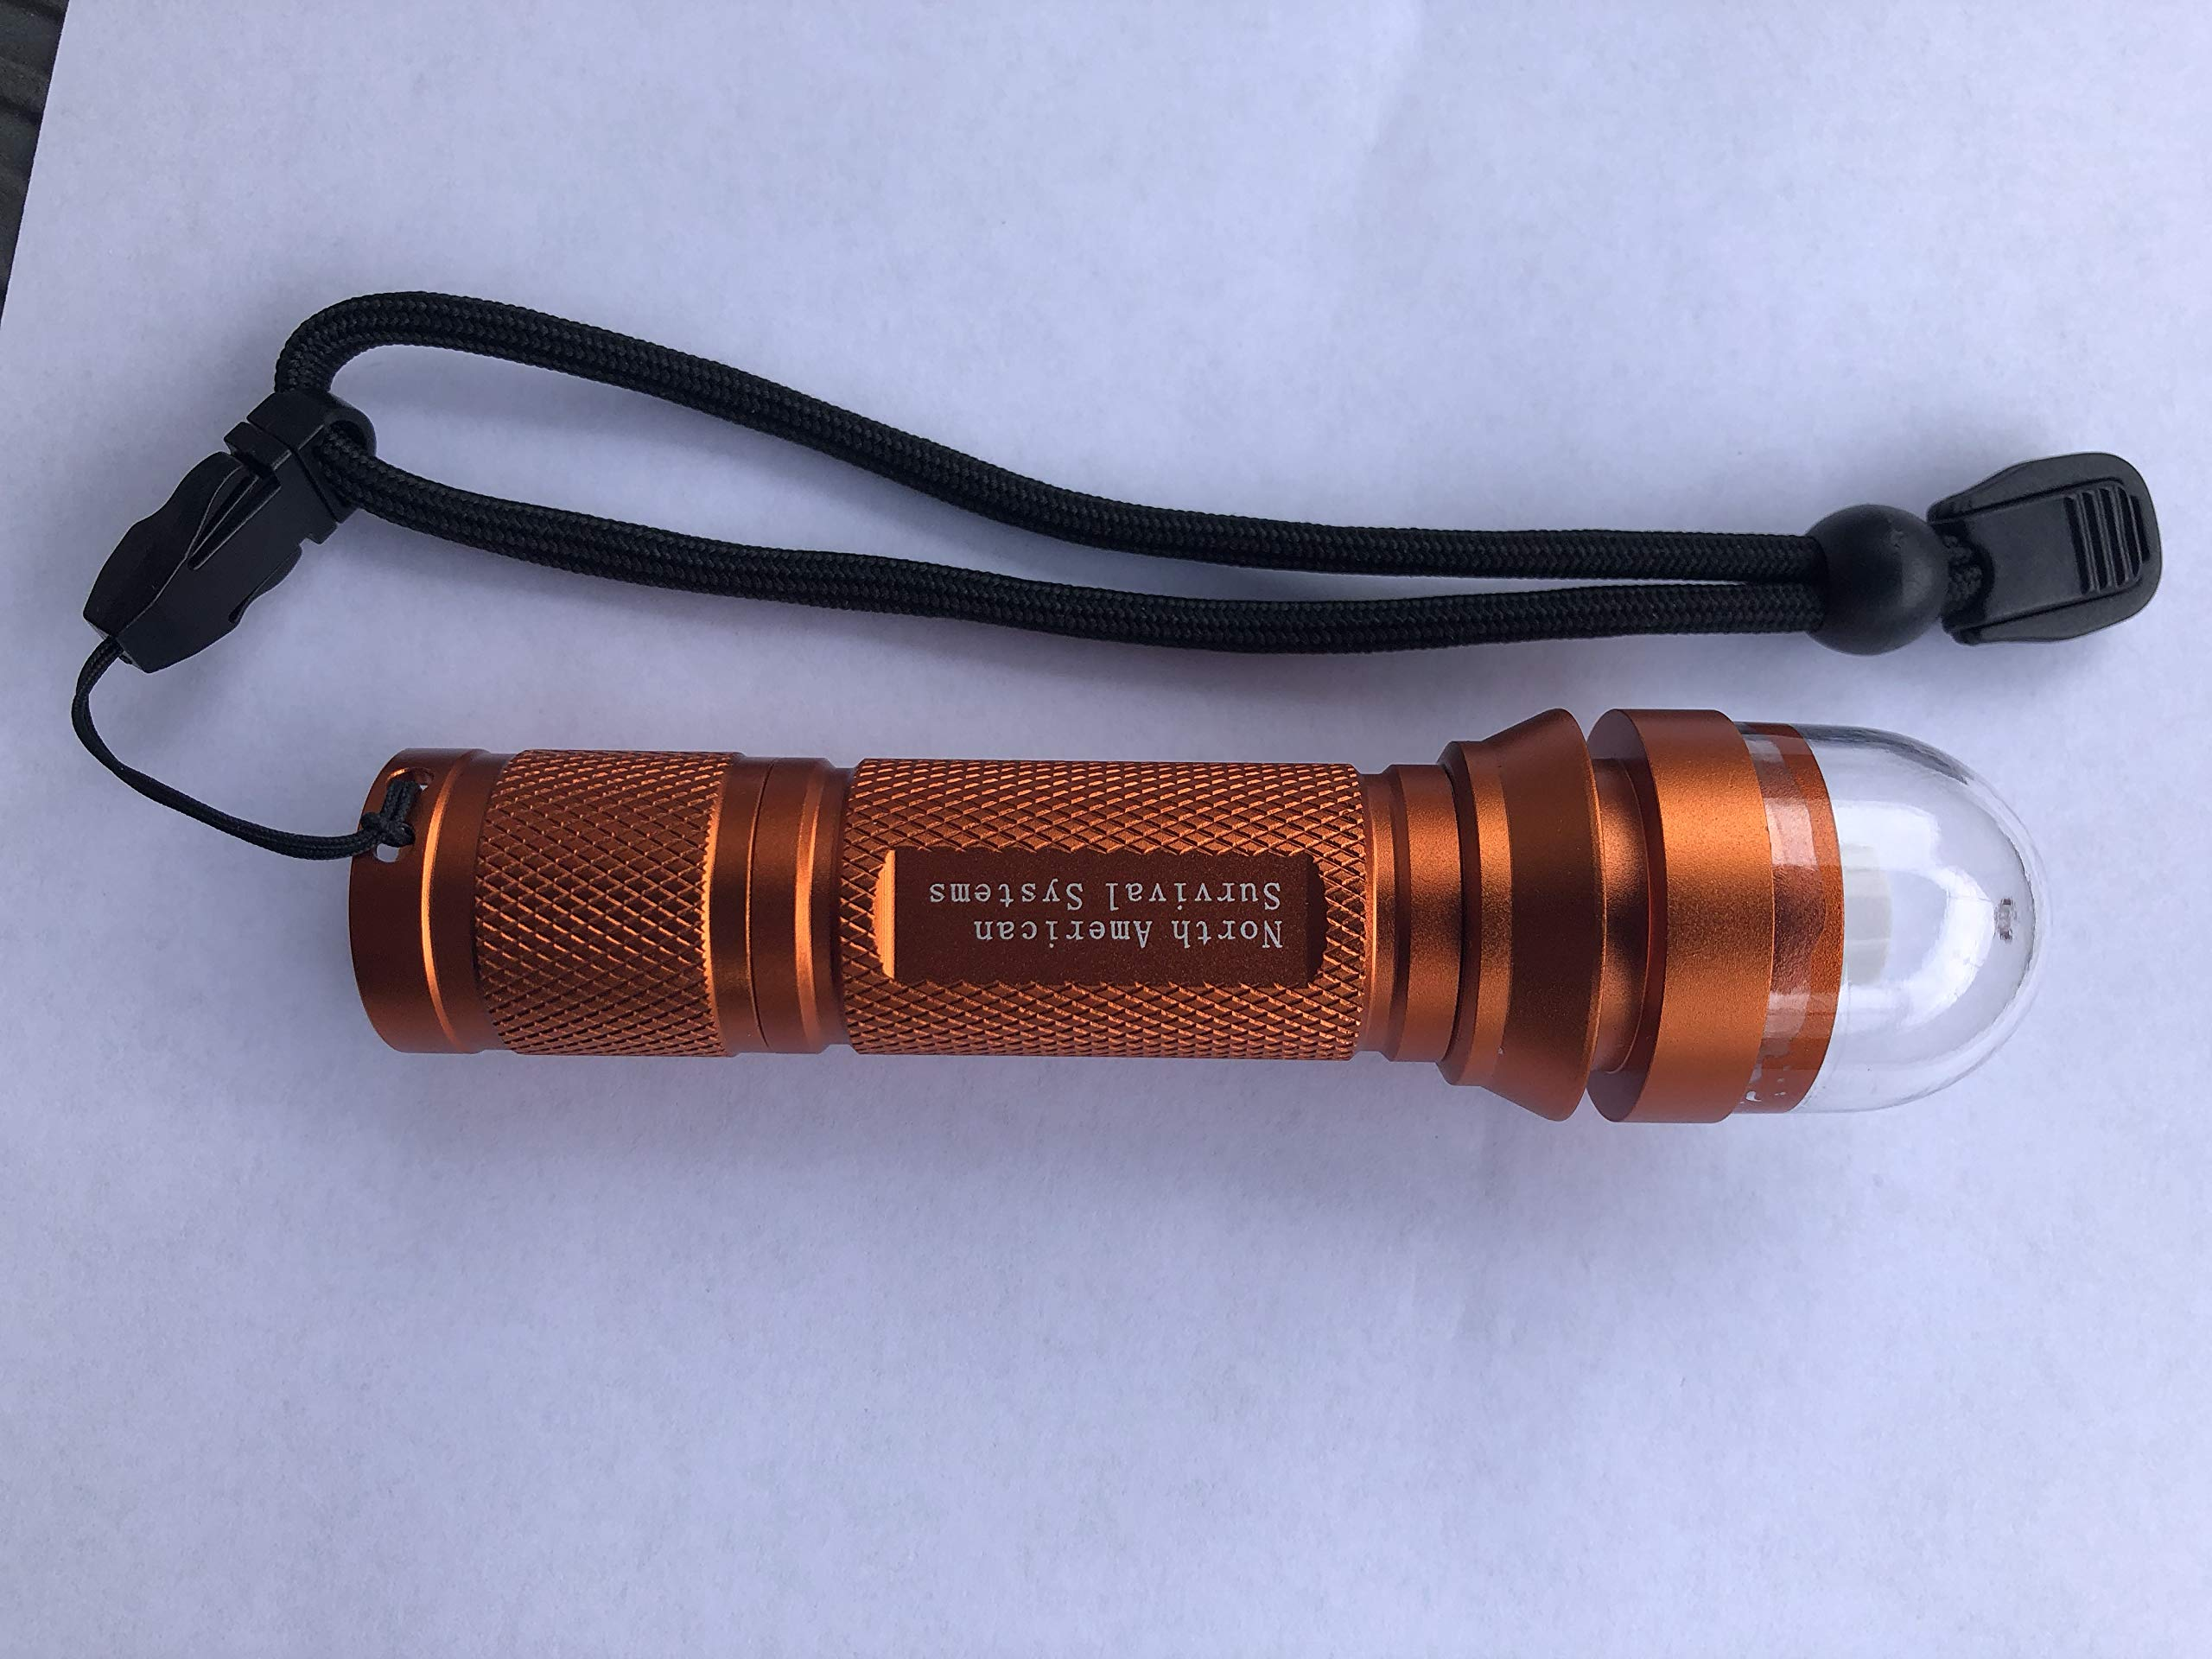 EF-30A-1 Electronic Flare Distress Signal IR and White Long Range Strobe for Search and Rescue by EF-30A-1 IRWT